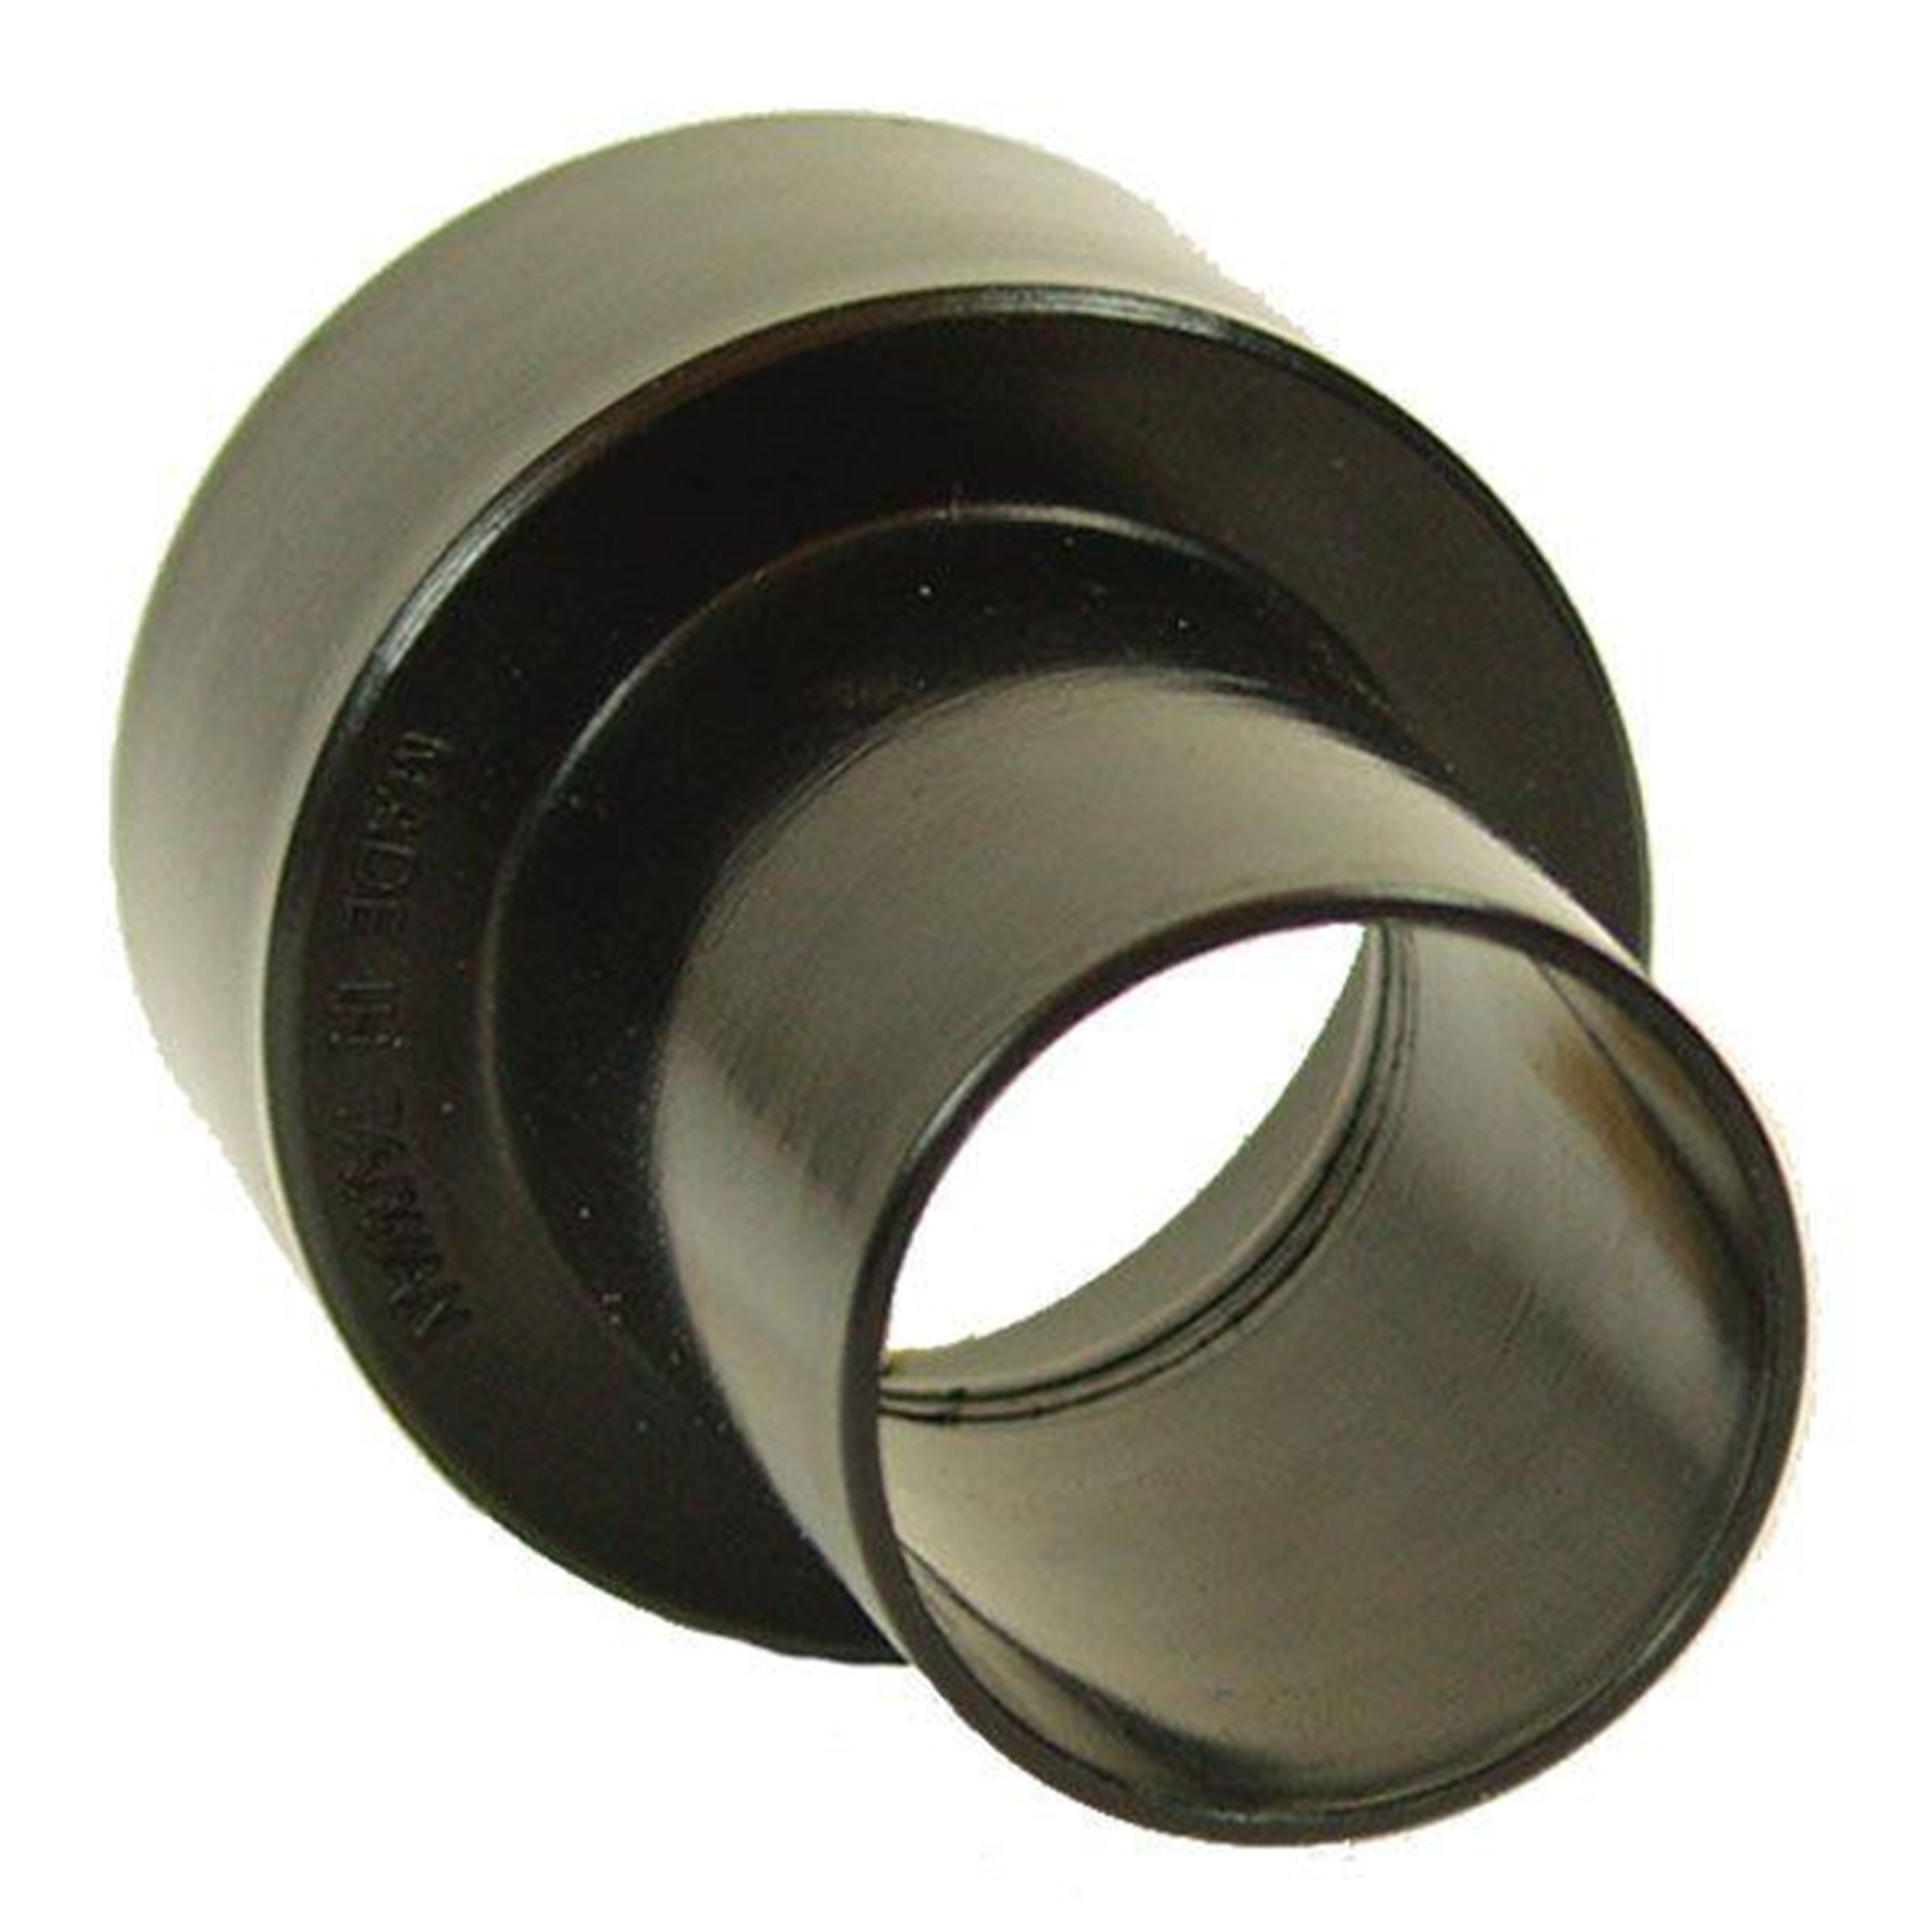 """11/2"""" to 21/4"""" Adapter Dust Collection Fitting Dust"""